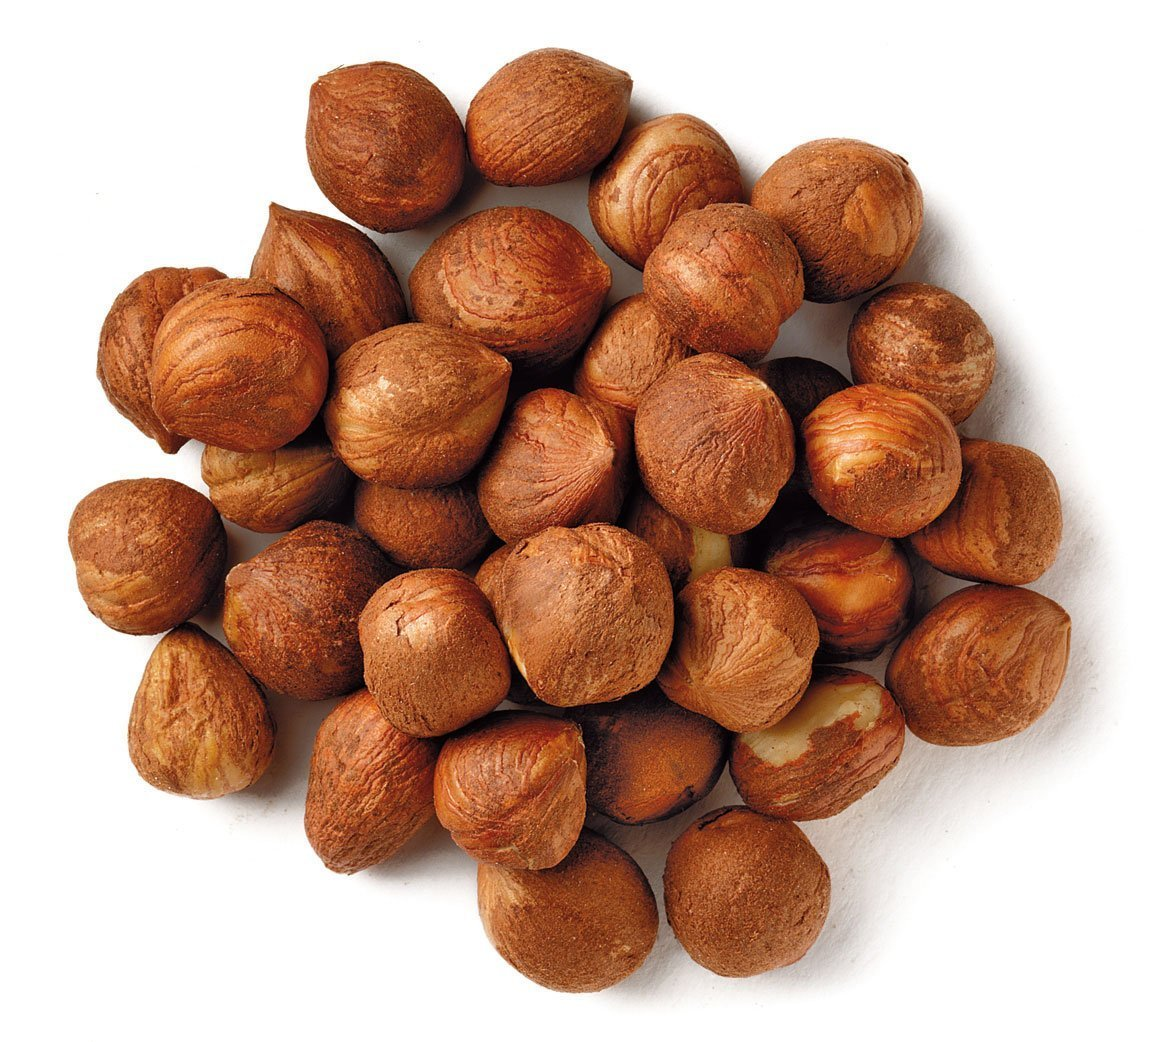 Anna and Sarah Raw Oregon Hazelnuts (Filberts) in Resealable Bag, 1 Lb